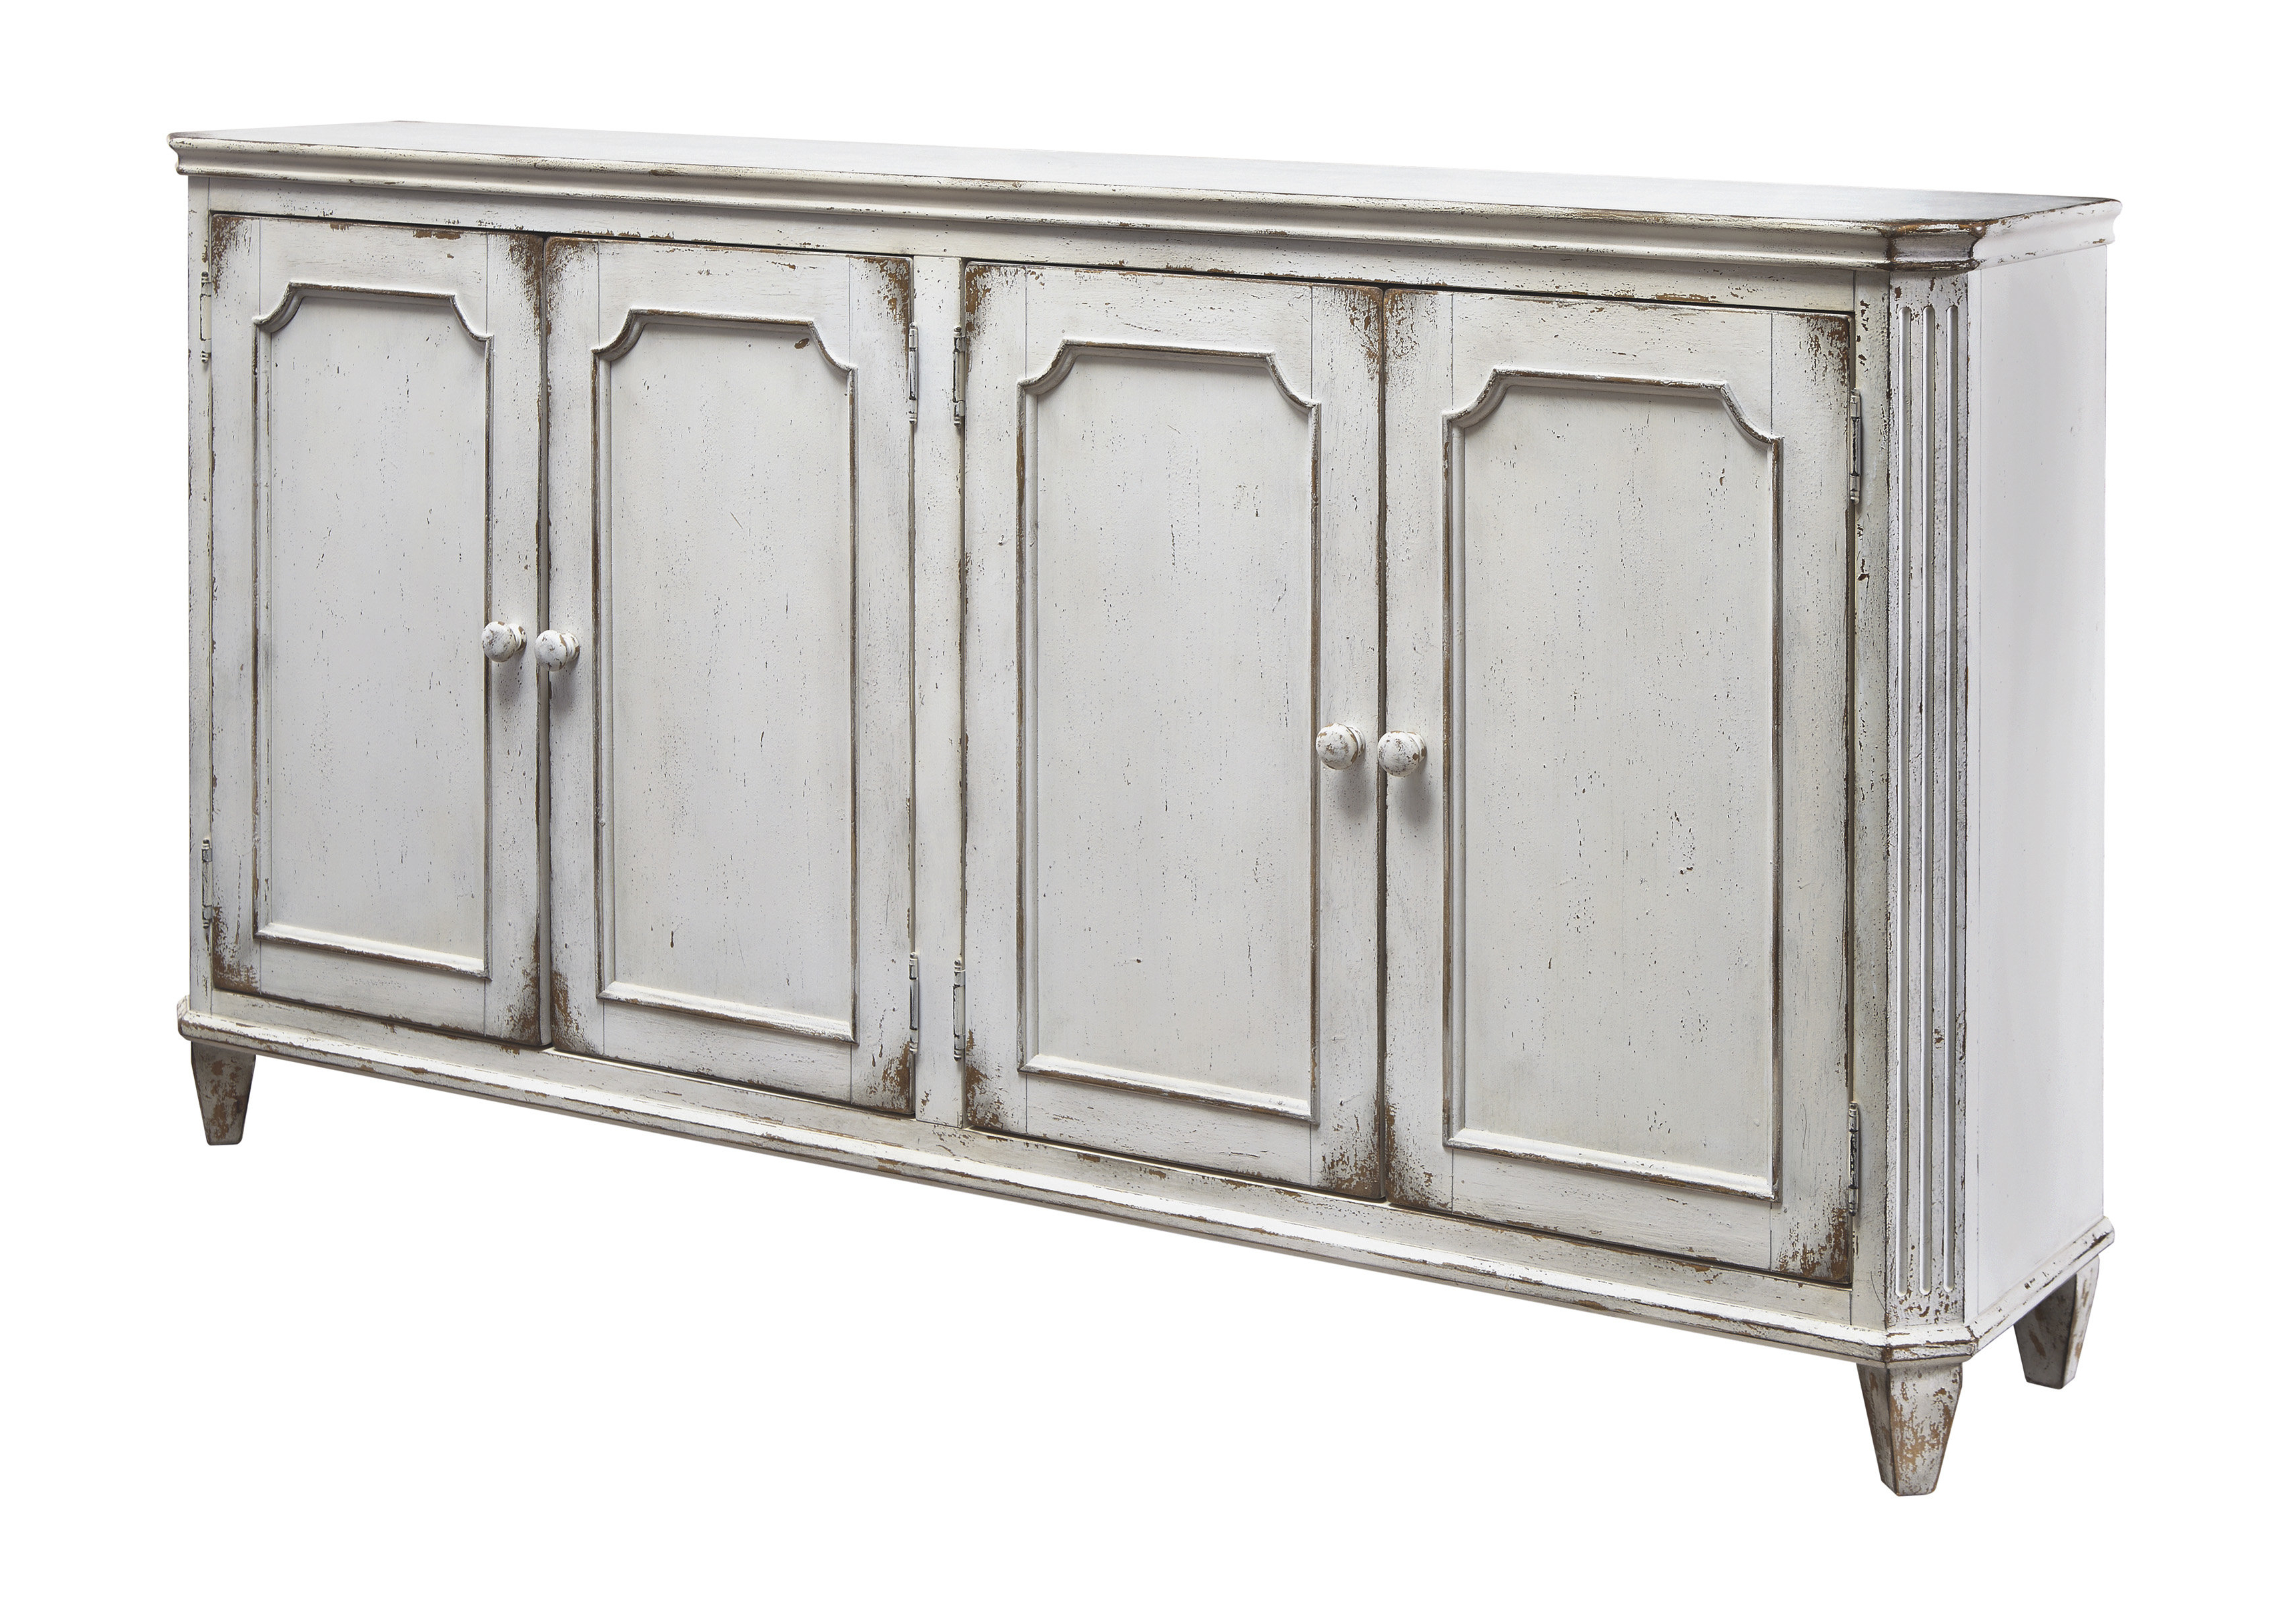 Raunds Sideboard Pertaining To Most Recent Adelbert Credenzas (View 17 of 20)